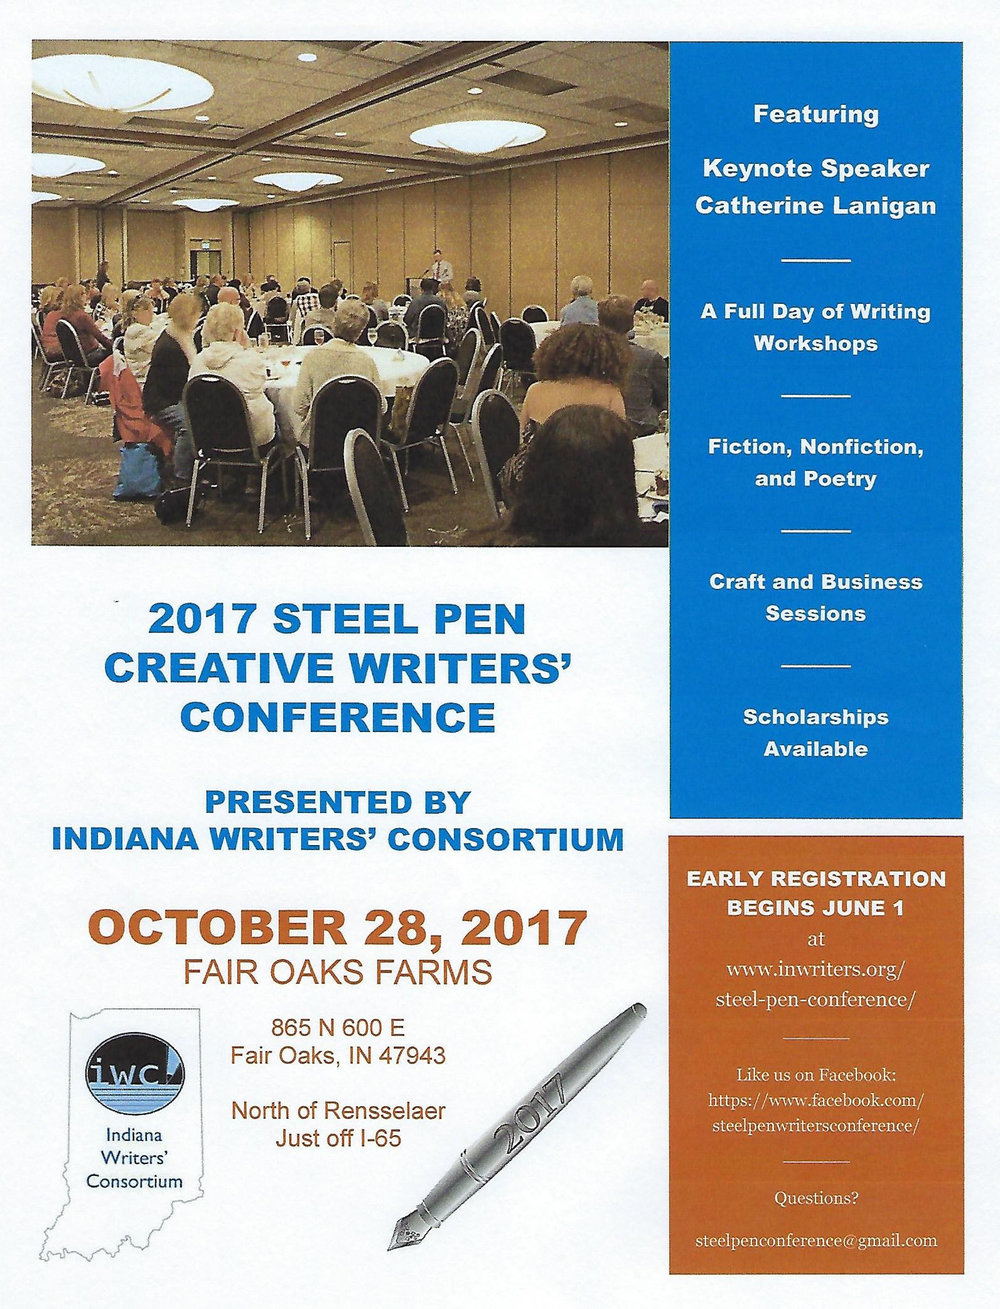 I'm delighted to participate in this fall's 2017 Steel Pen Creative Writers' Conference on Saturday, Oct 28 at Fair Oaks Farm in Fair Oaks, Indiana